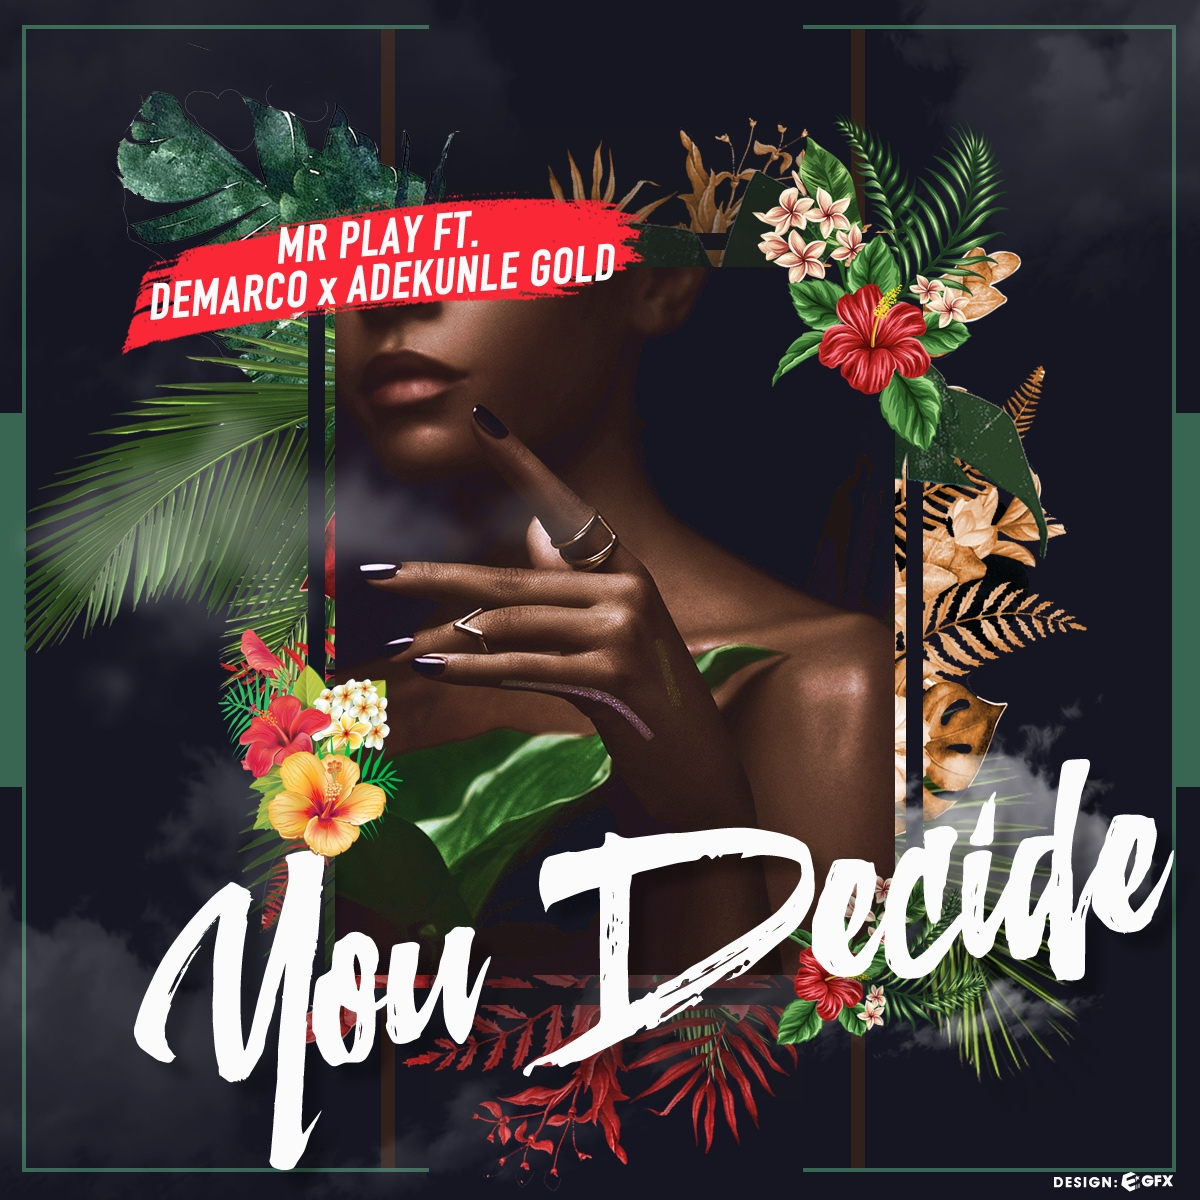 Mr Play ft. Demarco X Adekunle Gold - You Decide